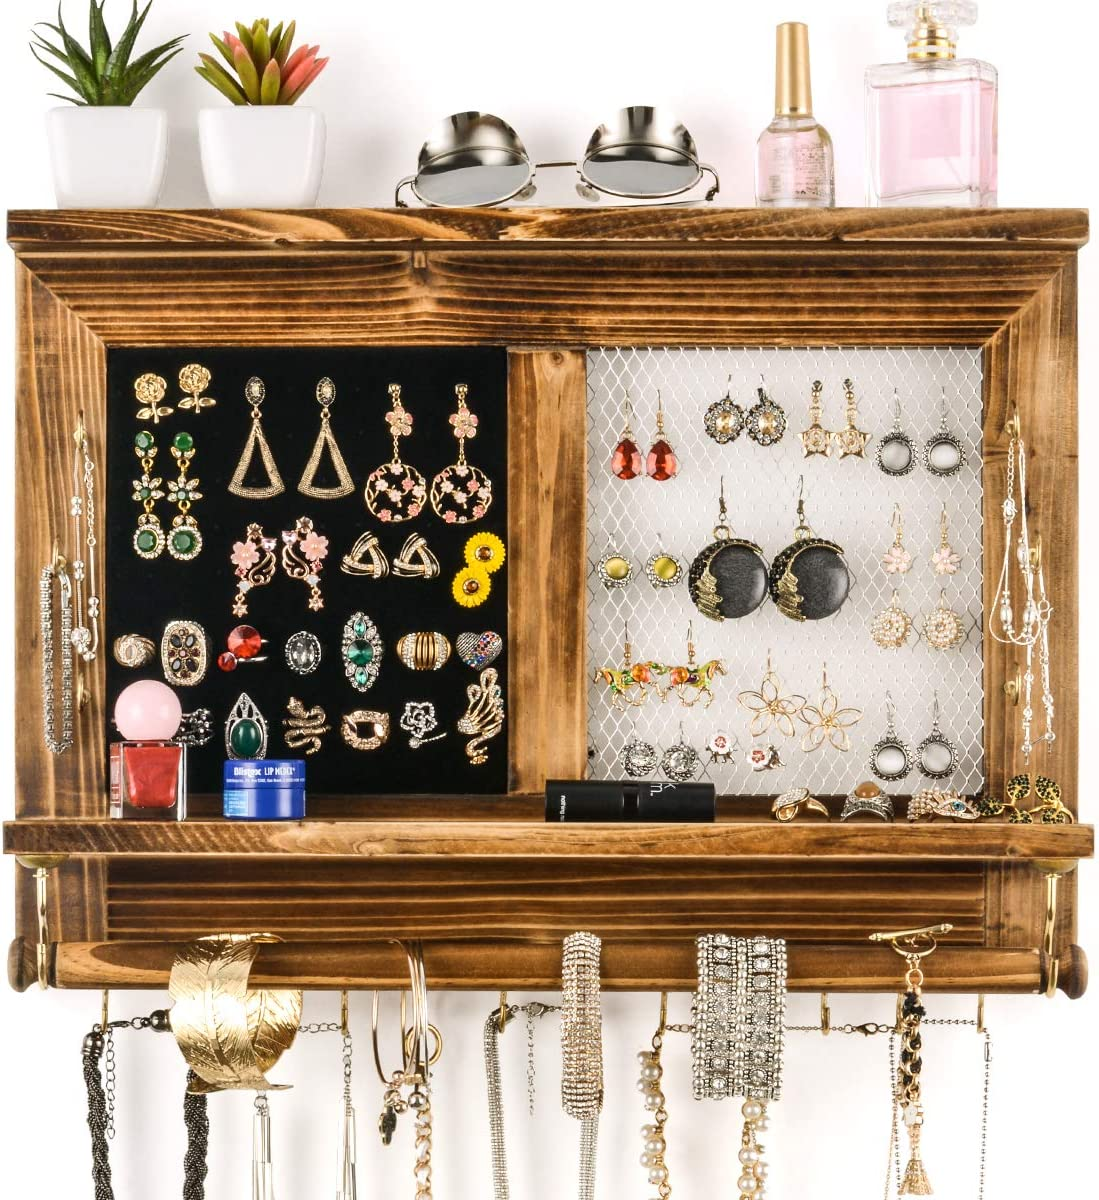 Sunix Rustic Mesh Jewelry Organizer, Wall Mounted Display Hanging Jewelry Holder for Necklace, Earrings, Bracelets with Bracelet Rod, Shelf and Hooks